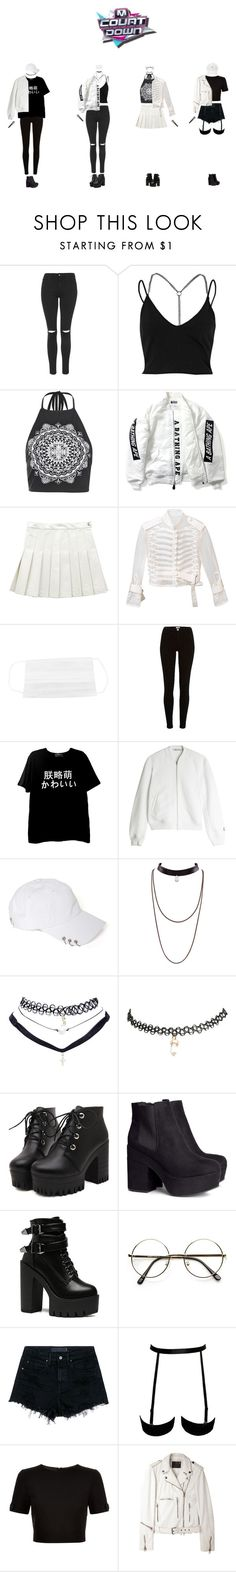 """[M!Count Down] Comeback SWIRL - KARMA"" by swirlsquad1234 ❤ liked on Polyvore featuring Topshop, River Island, Boohoo, Sacai, T By Alexander Wang, Wet Seal, H&M, Audio-Technica, Alexander Wang and Ted Baker"